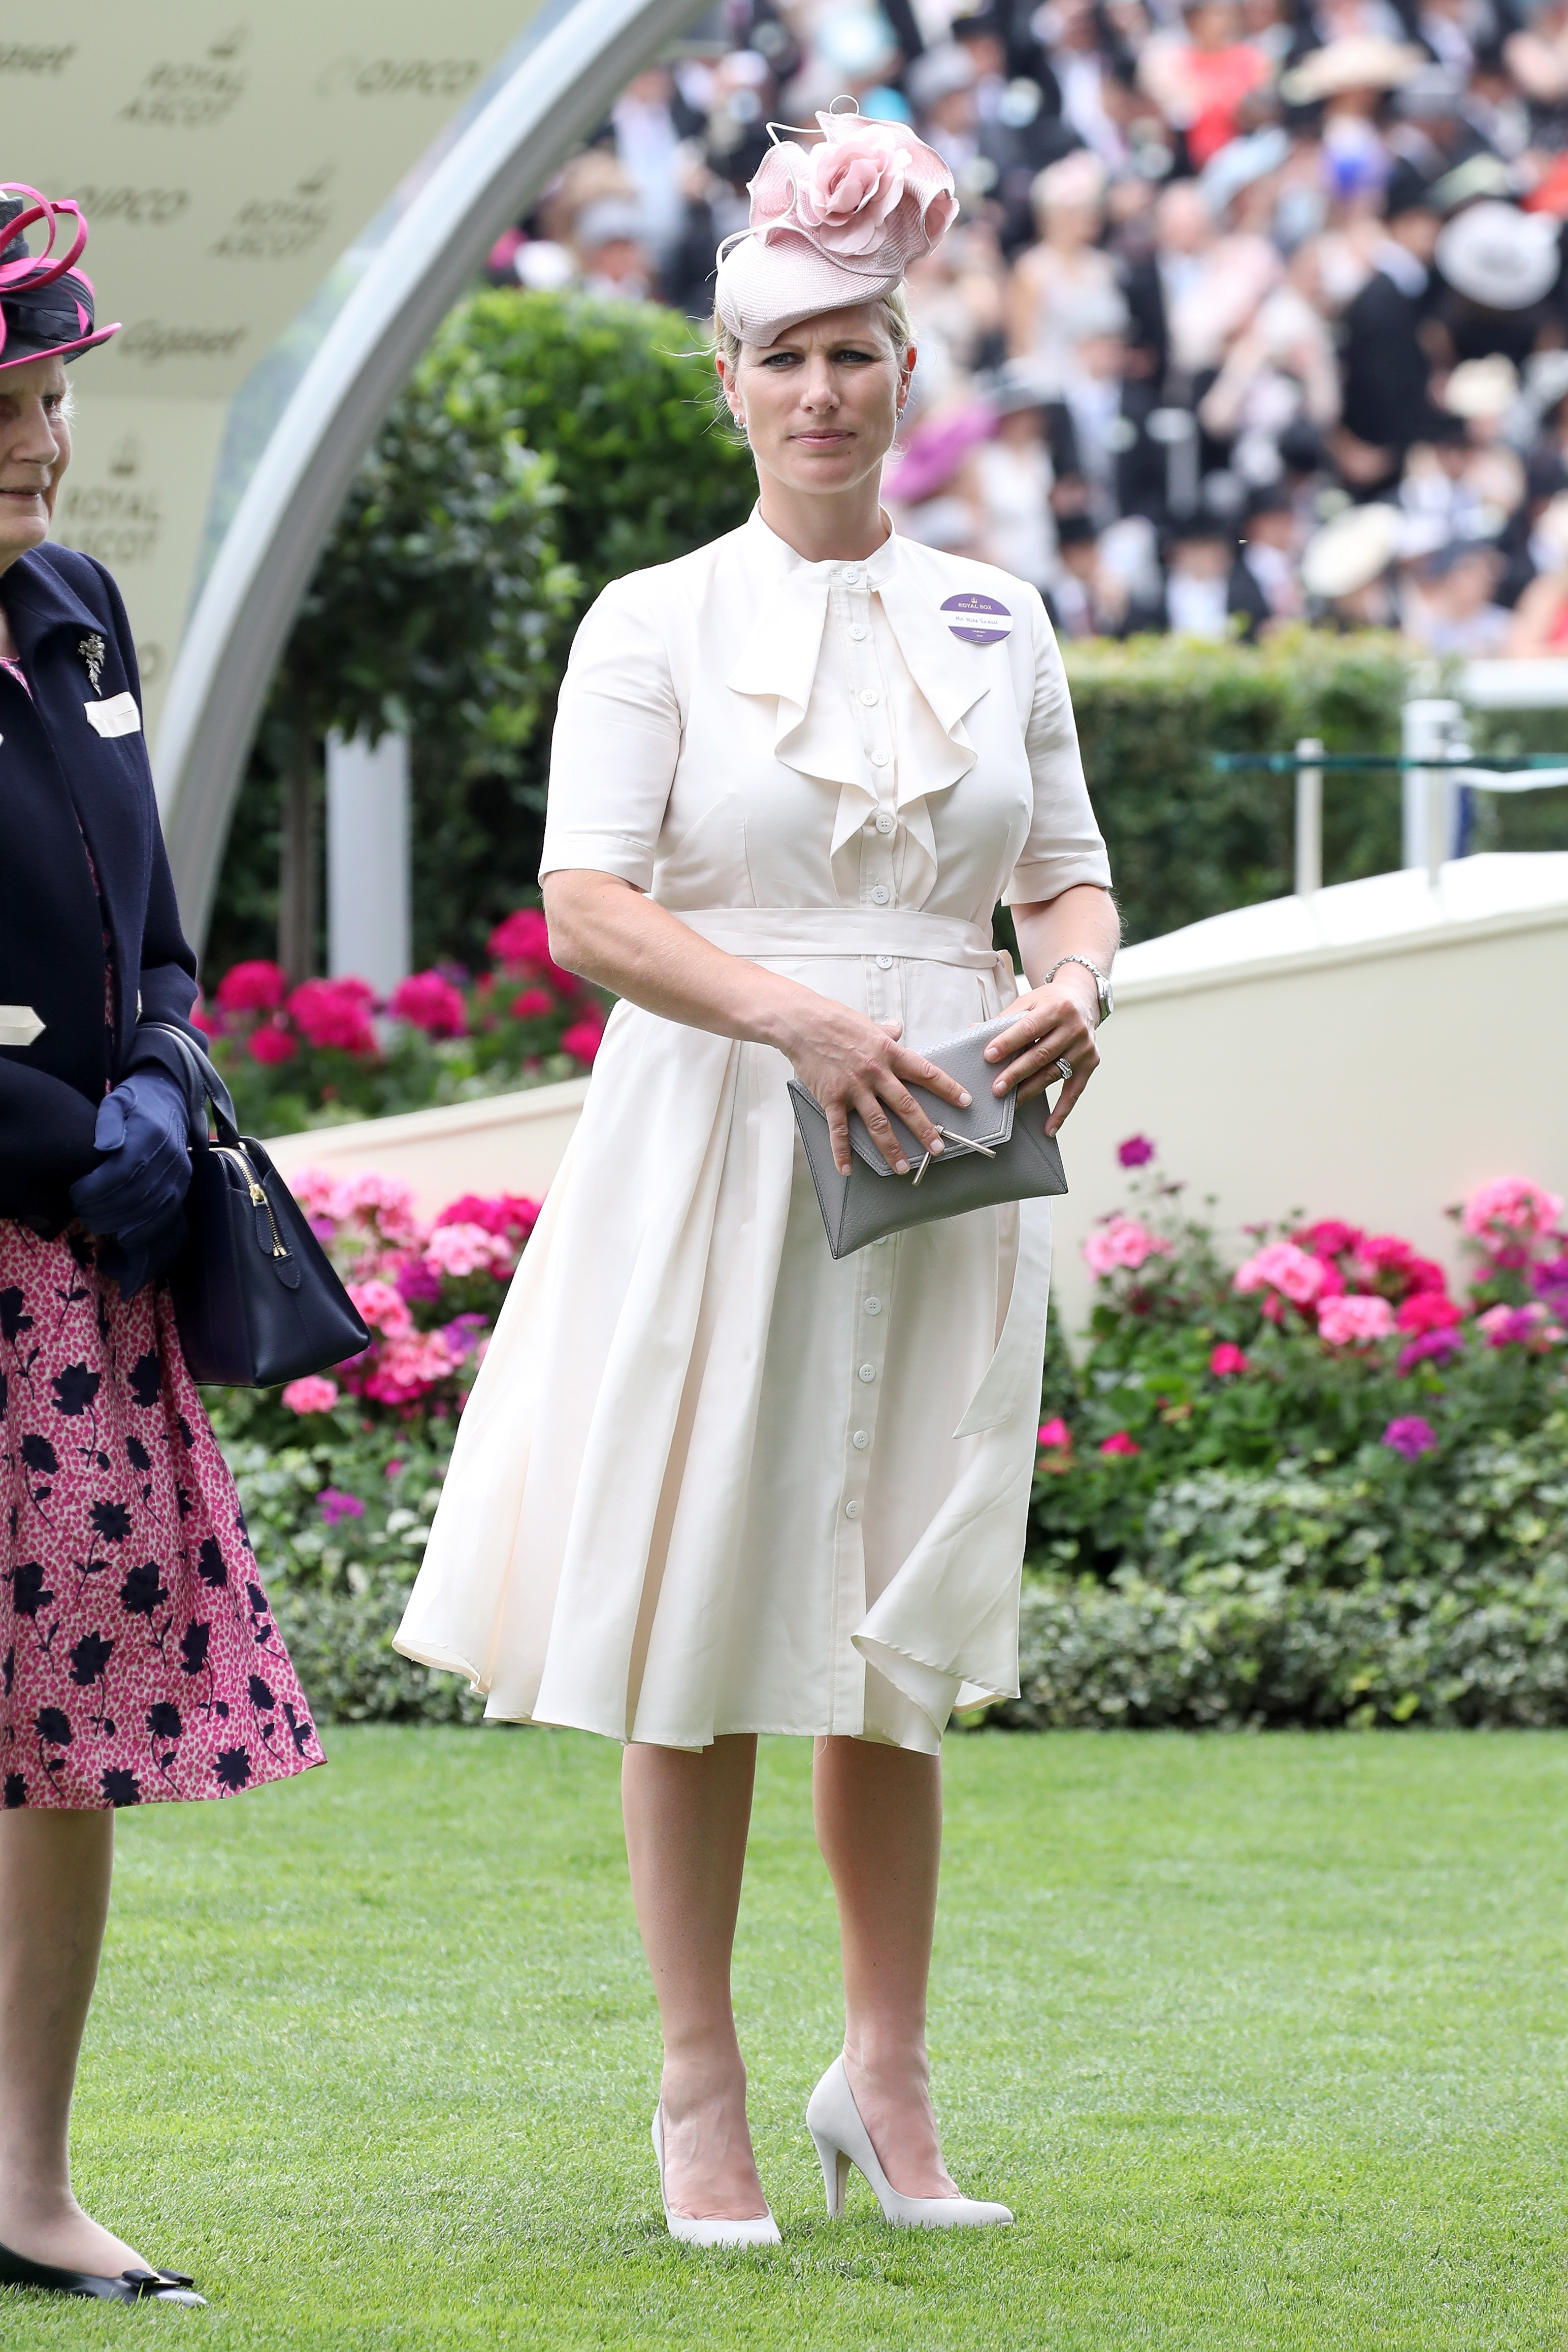 Zara Philllips is seen in the Parade Ring as she attends Royal Ascot 2017 at Ascot Racecourse on June 22, 2017 in Ascot, England.